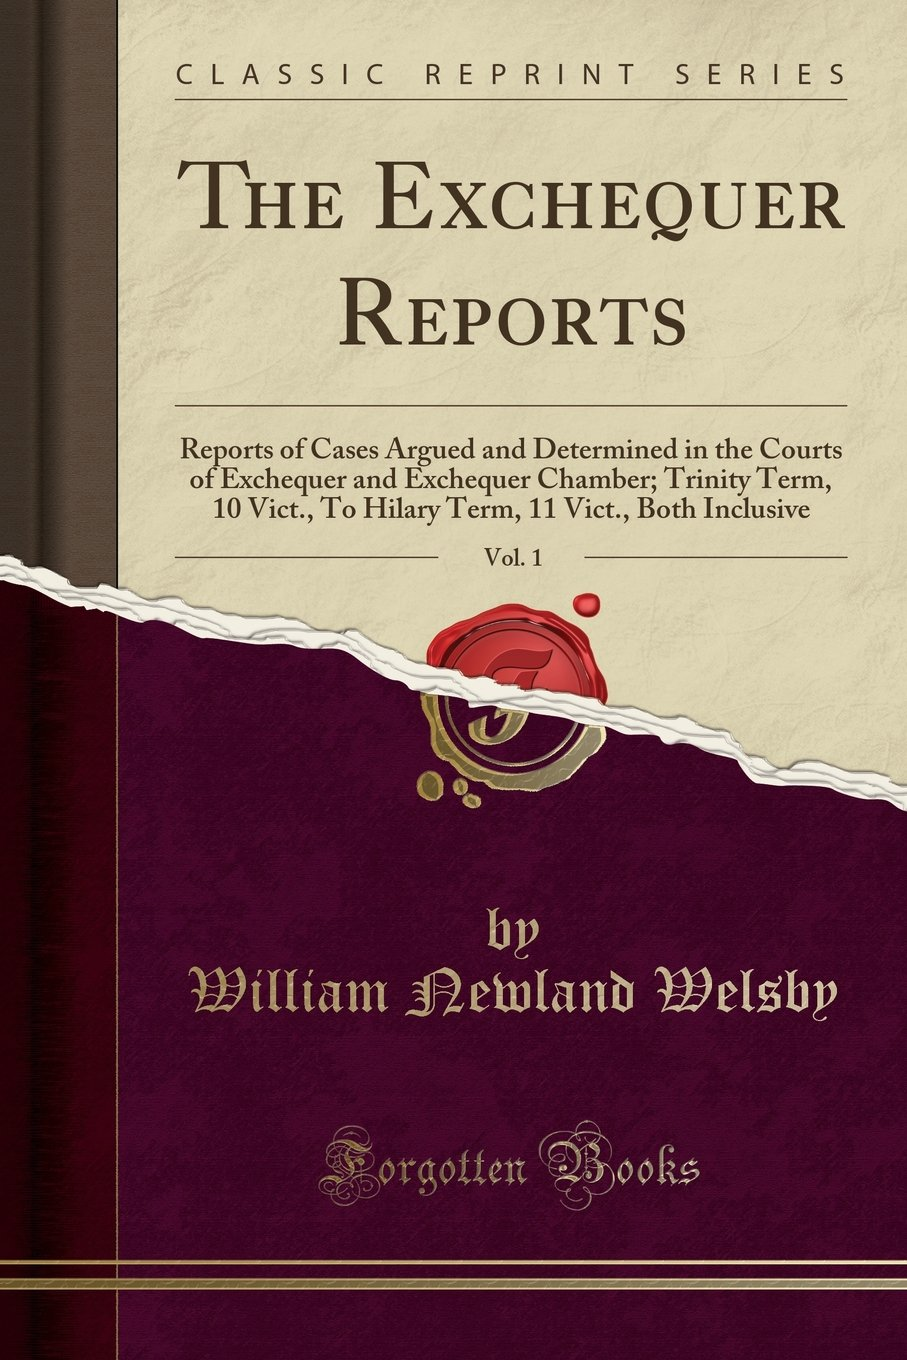 Download The Exchequer Reports, Vol. 1: Reports of Cases Argued and Determined in the Courts of Exchequer and Exchequer Chamber; Trinity Term, 10 Vict., To ... 11 Vict., Both Inclusive (Classic Reprint) PDF